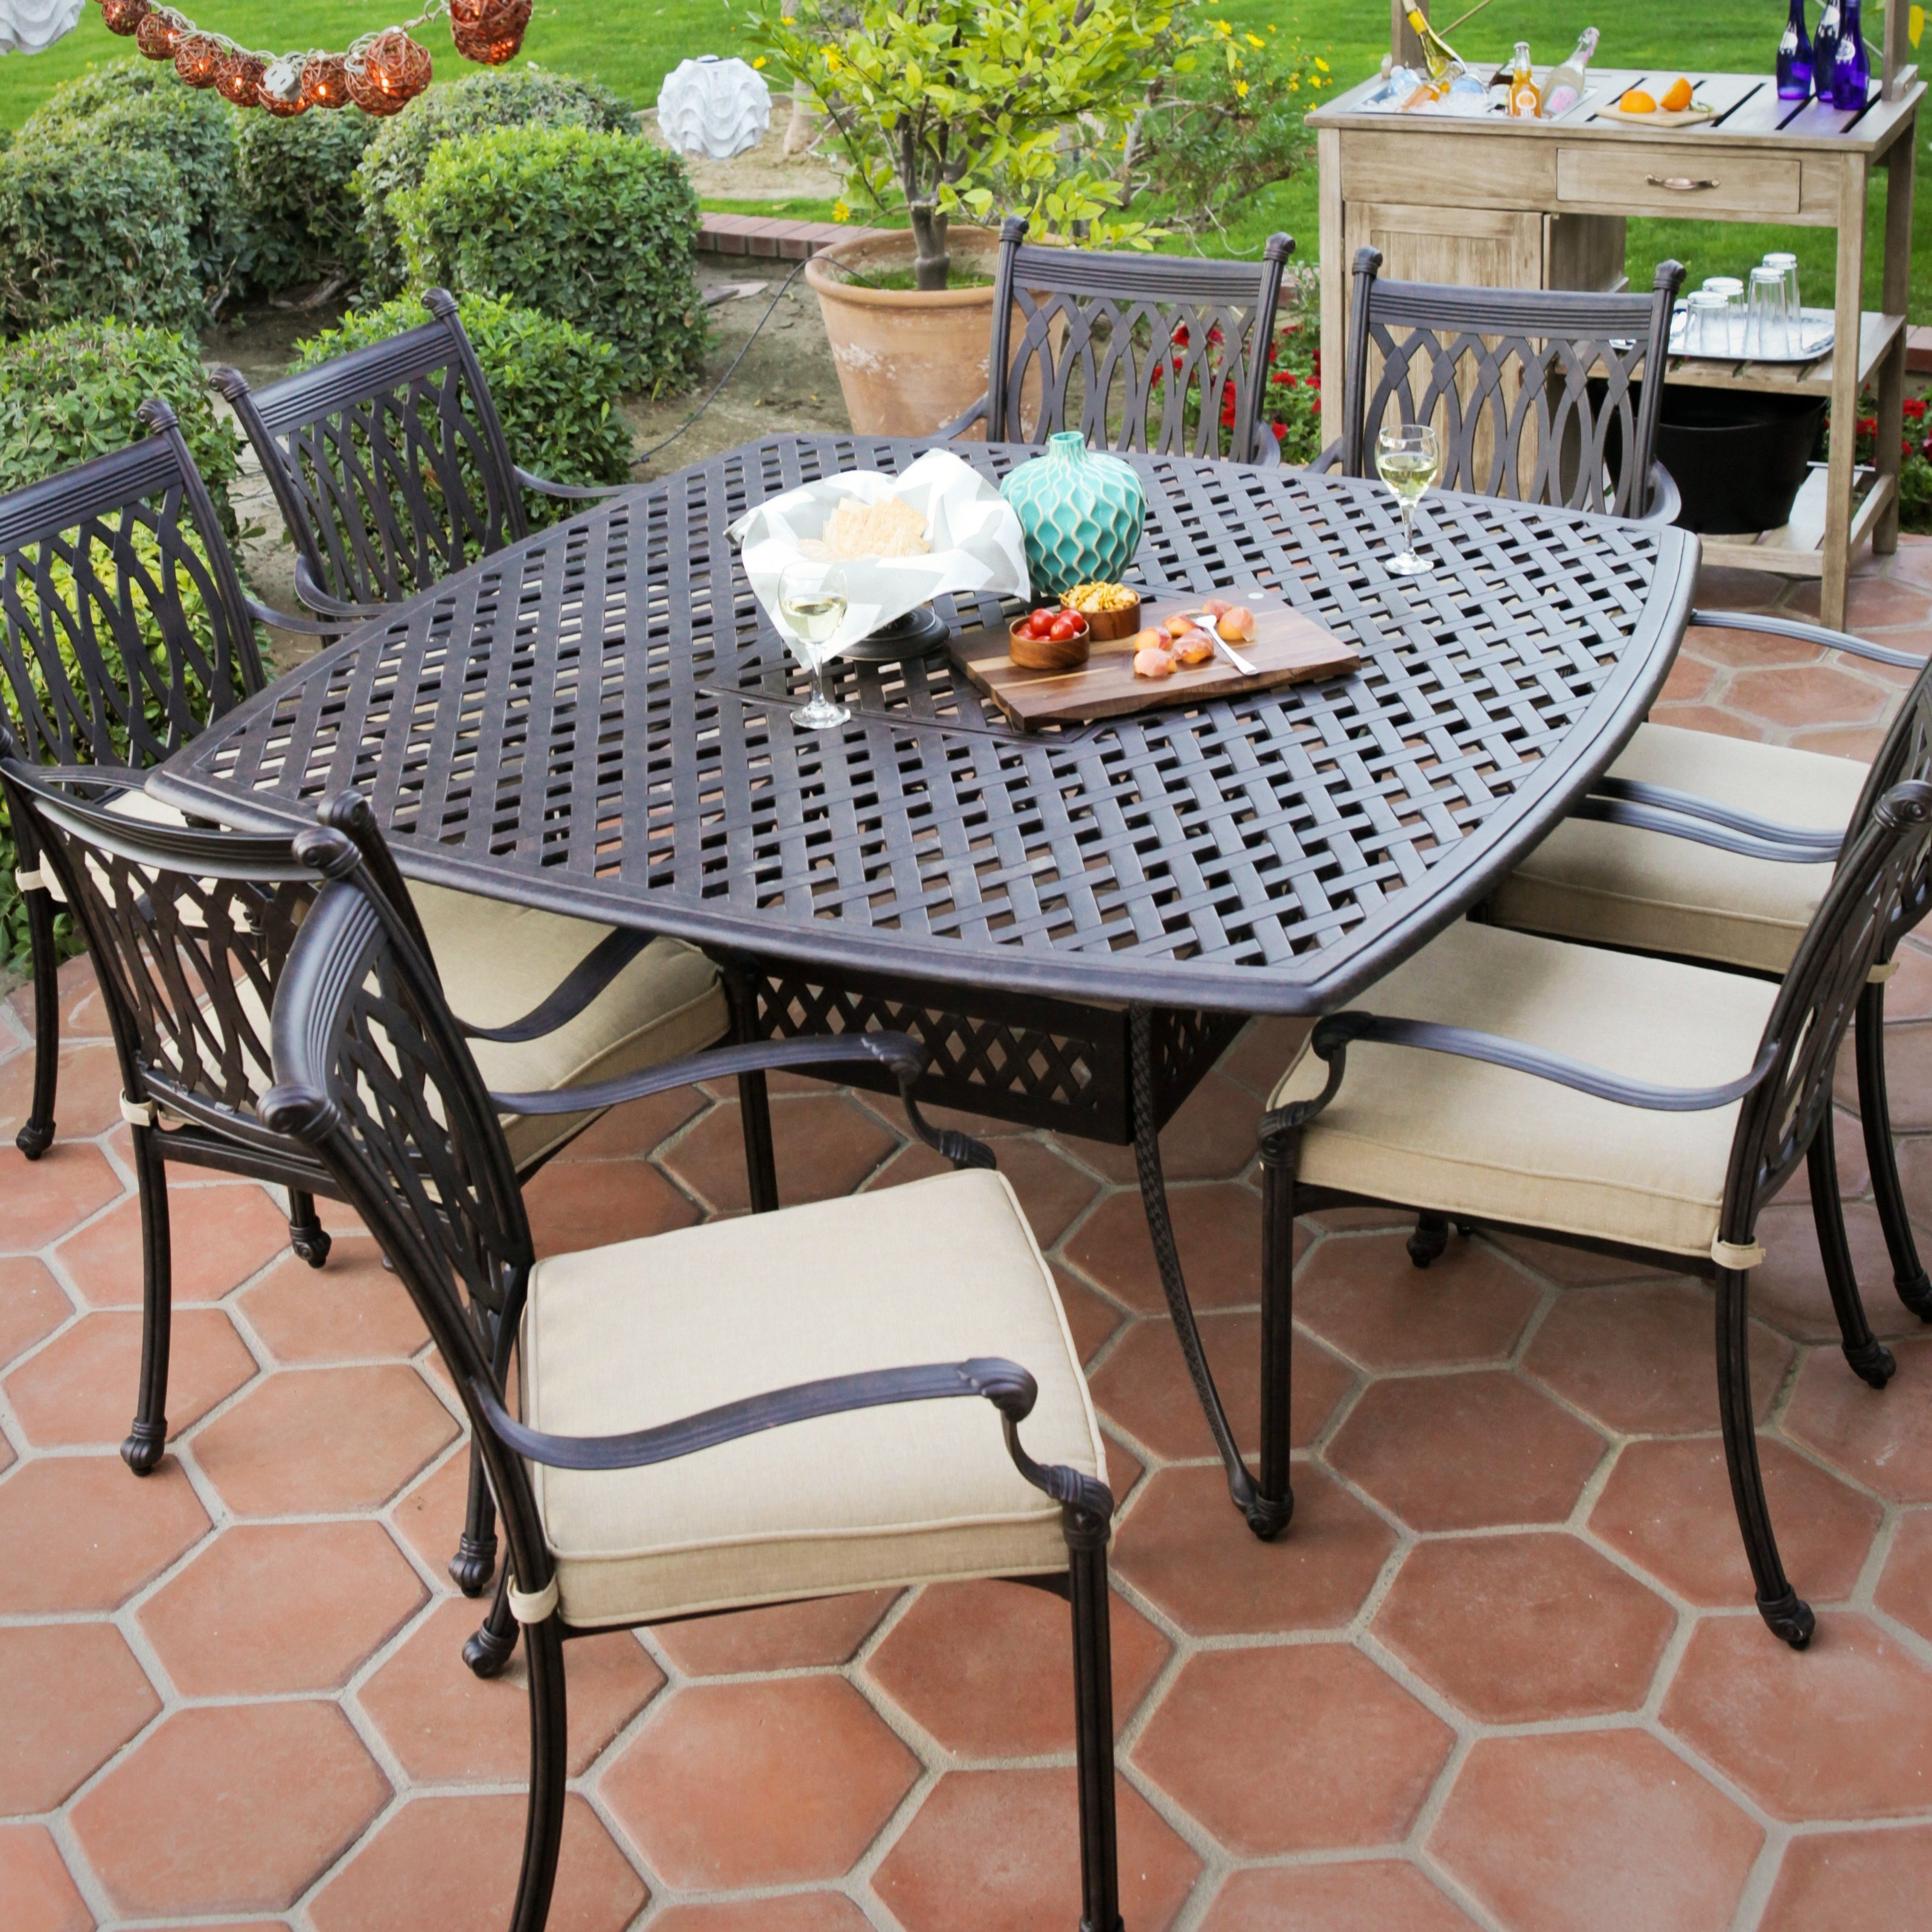 Modern Patio Furniture Clearance Better Best Outdoor Dining Sets On With Regard To 2017 Patio Conversation Sets With Dining Table (View 7 of 15)